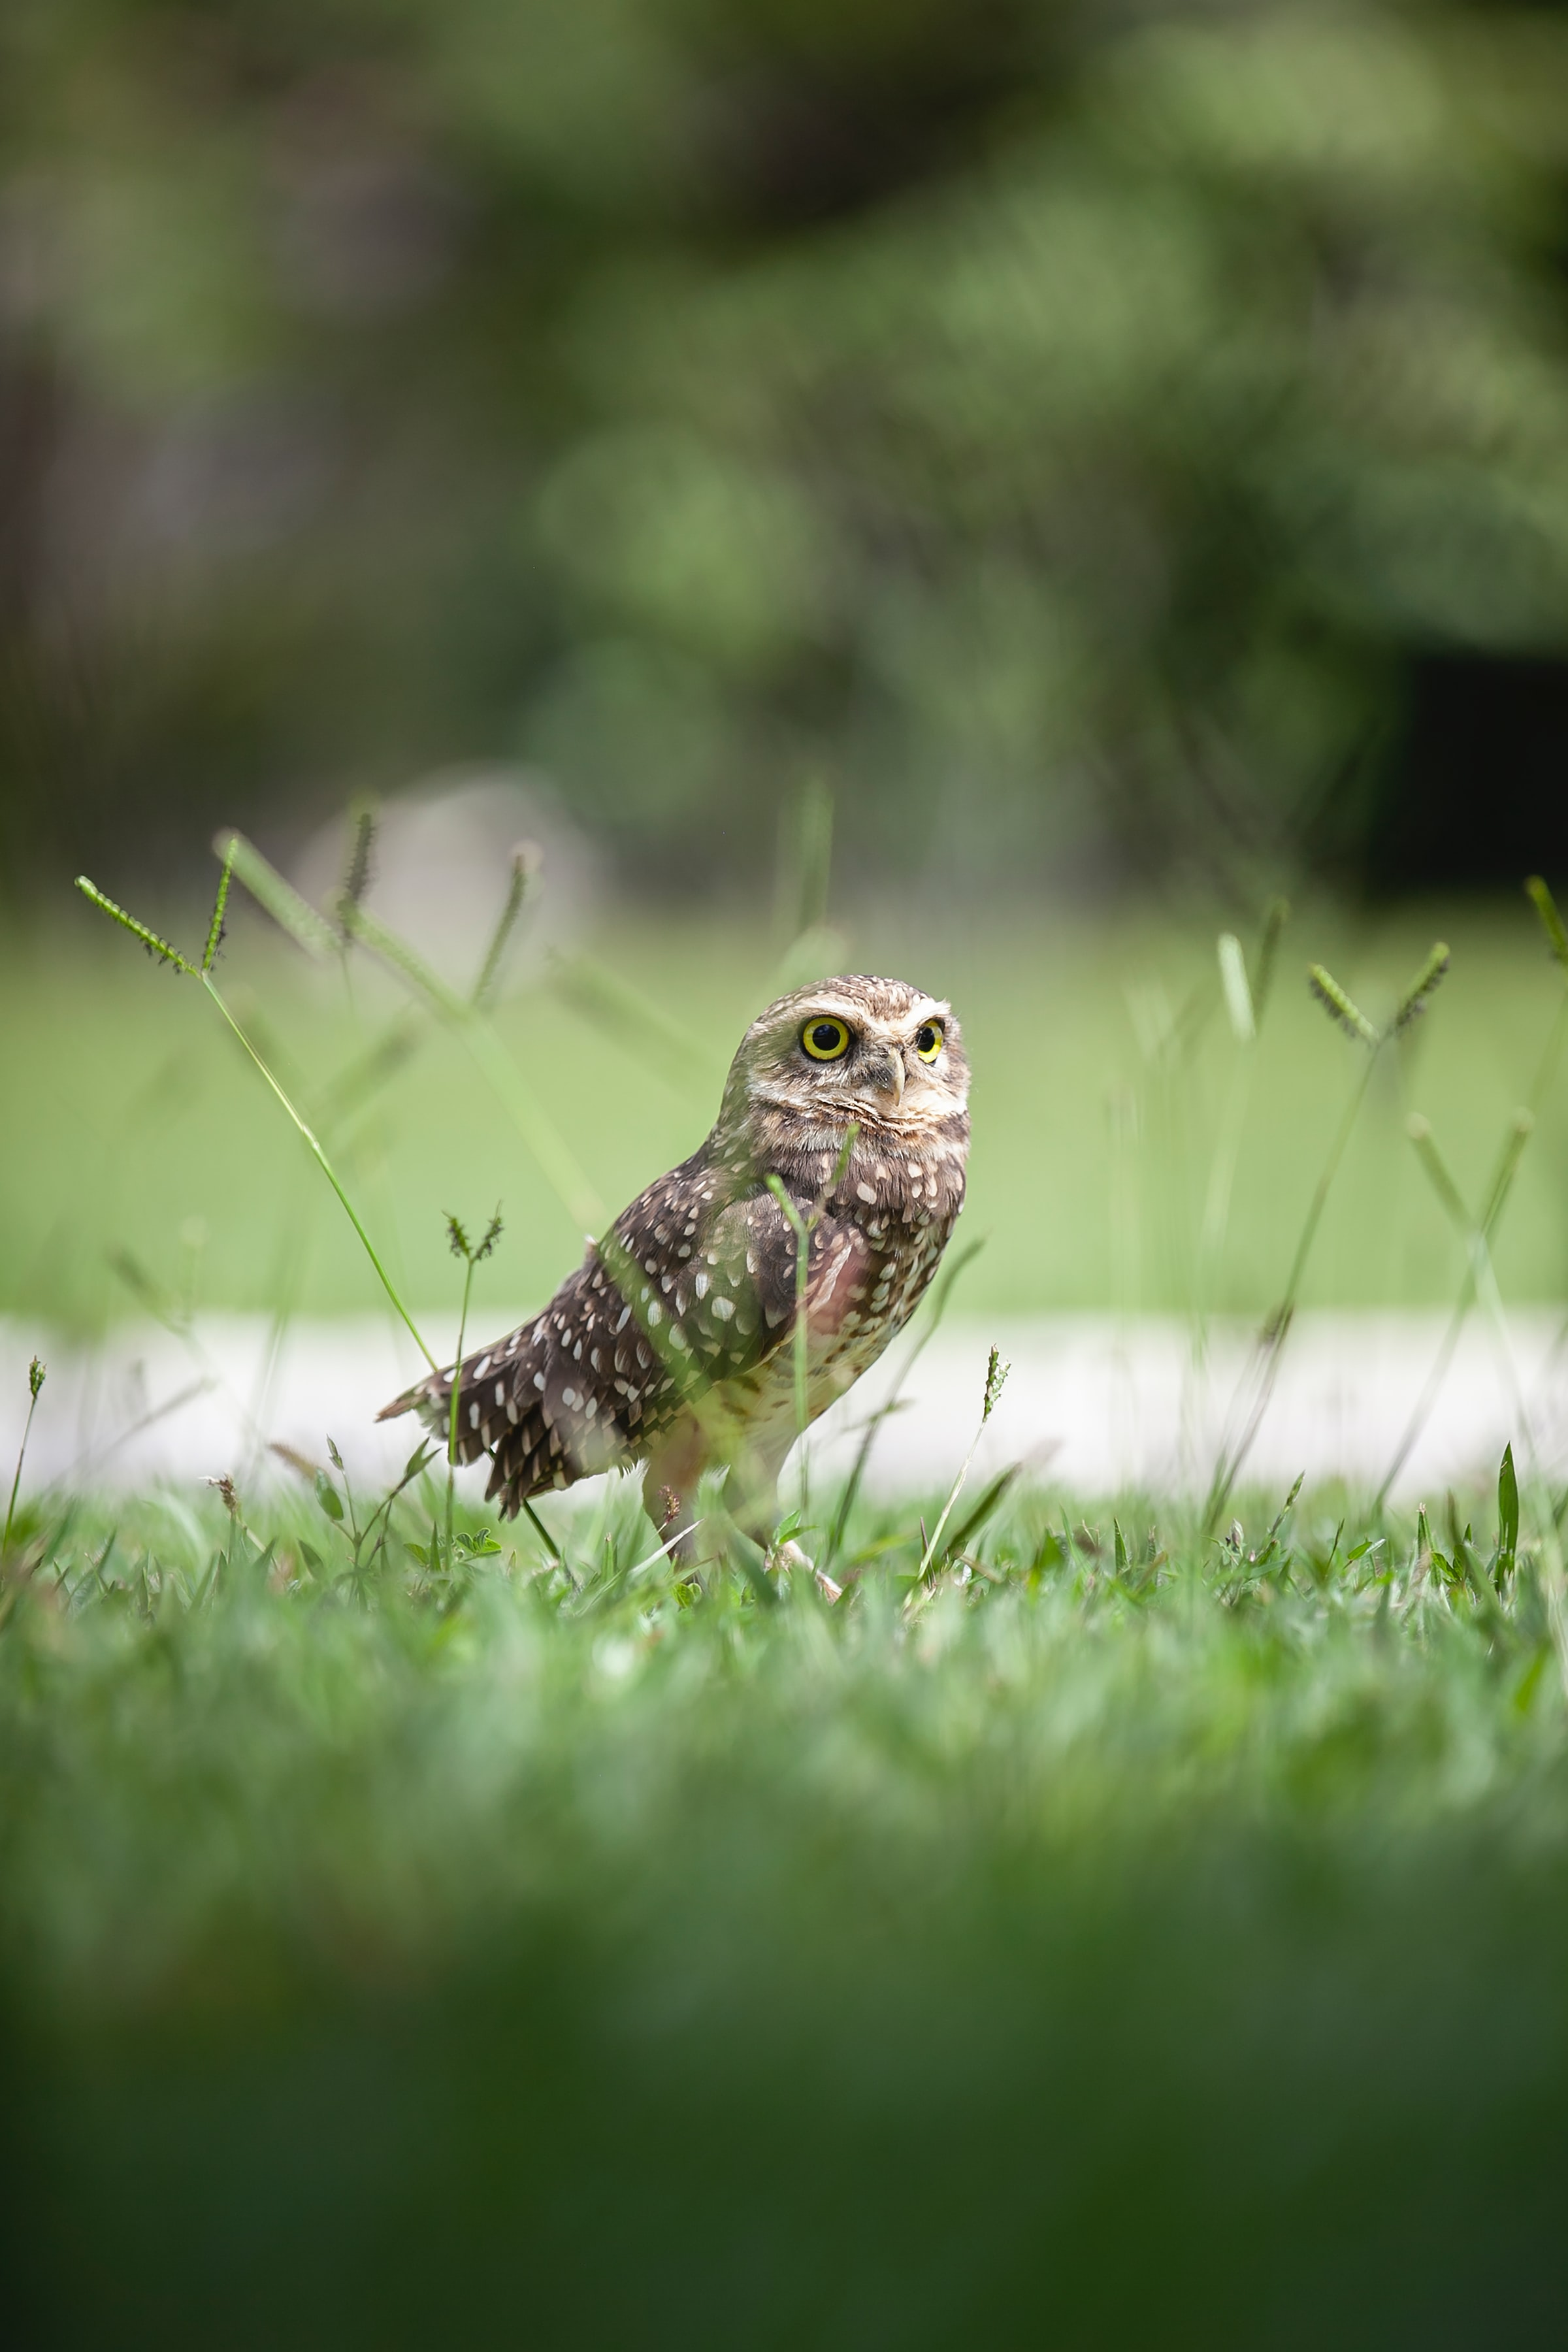 155914 download wallpaper Animals, Owl, Bird, Grass, Predator, Focus screensavers and pictures for free